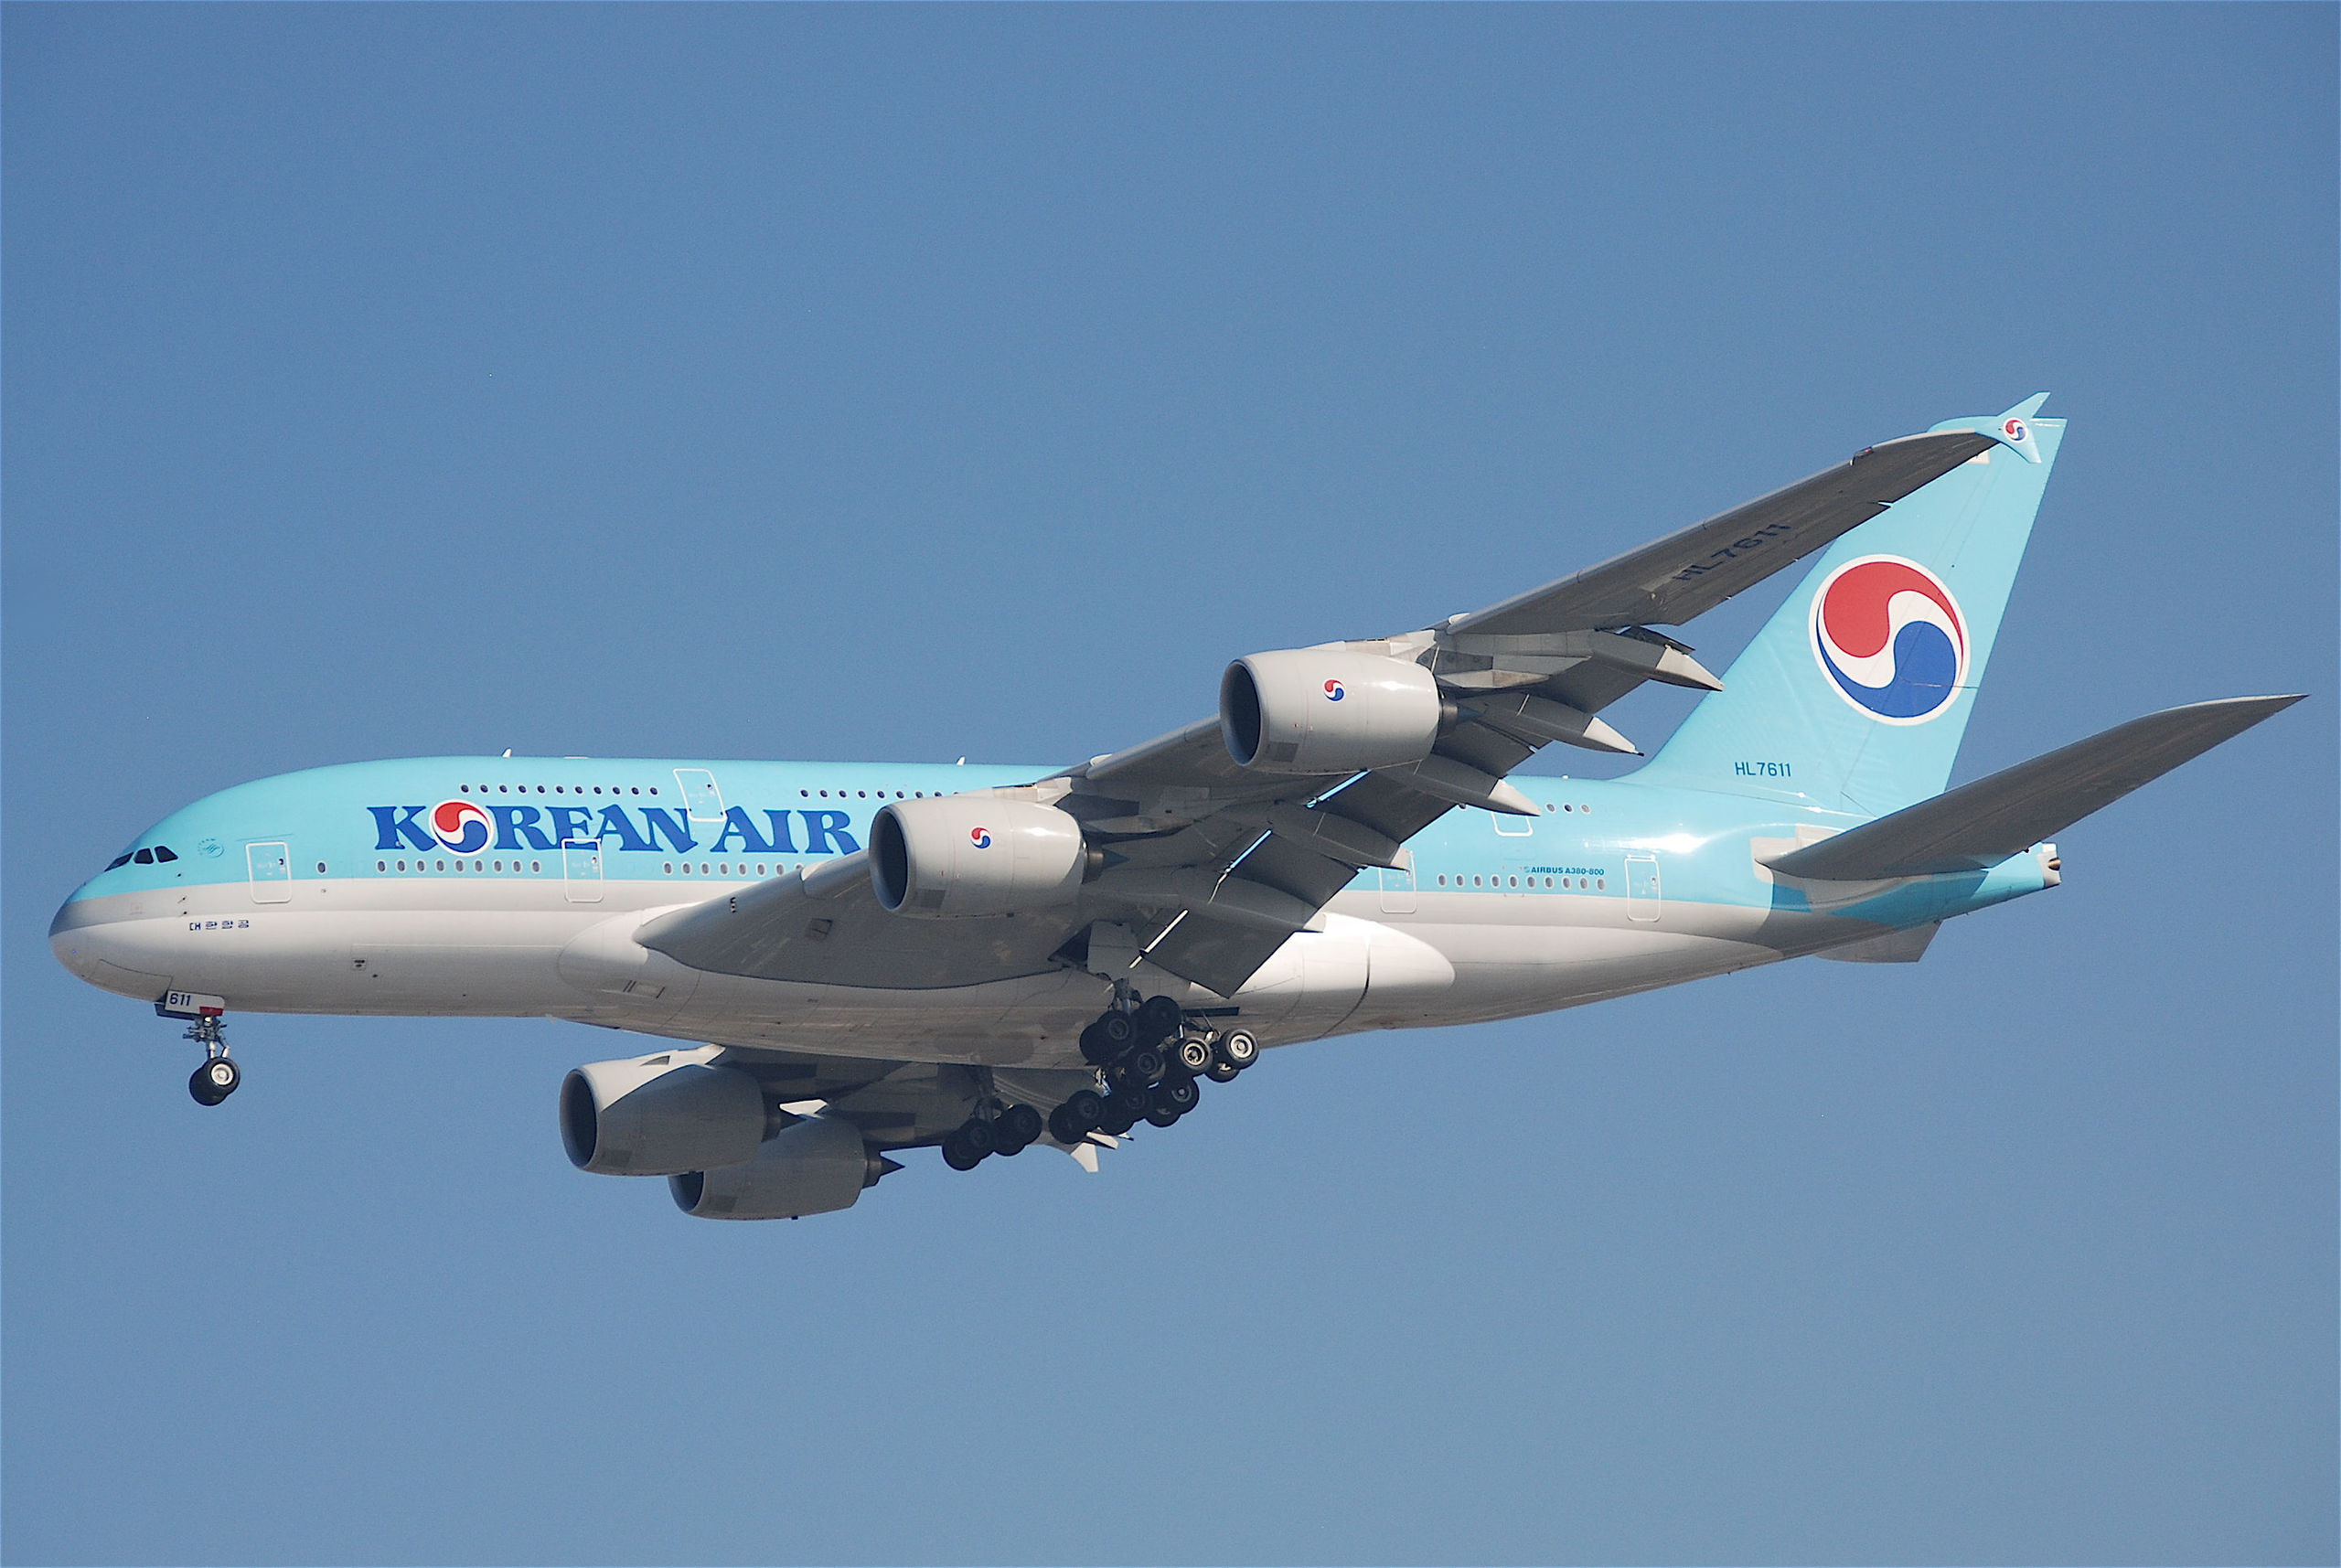 airline that made profit in 2020 — Korean Air